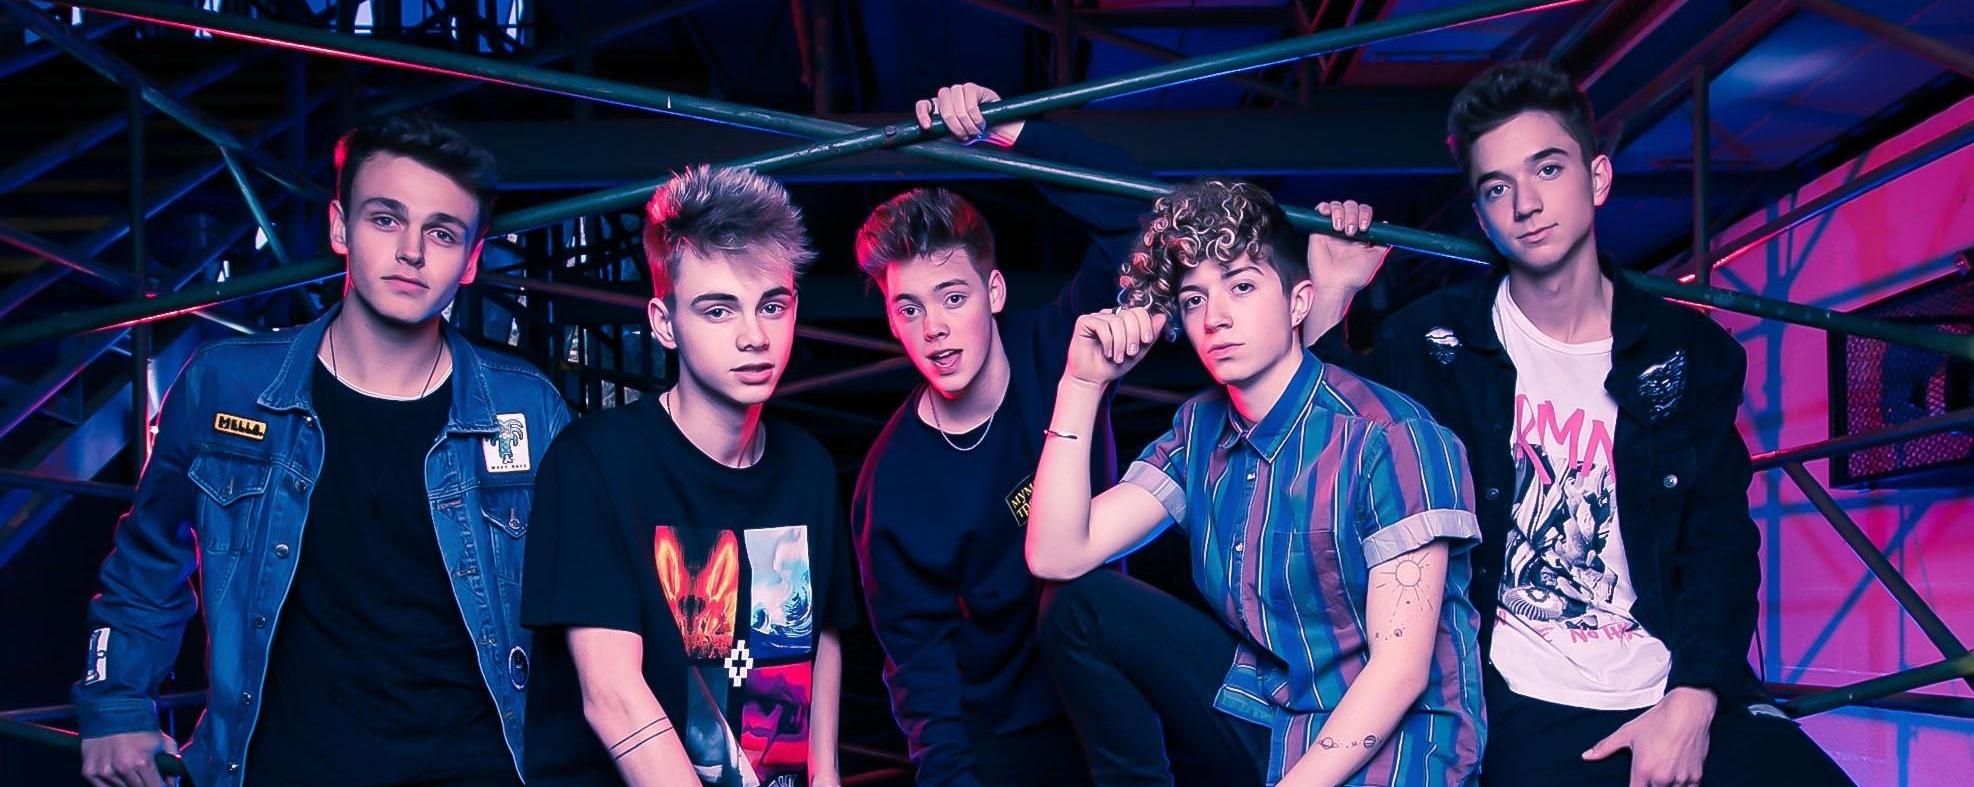 Dance pop group Why Don't We to perform in Singapore